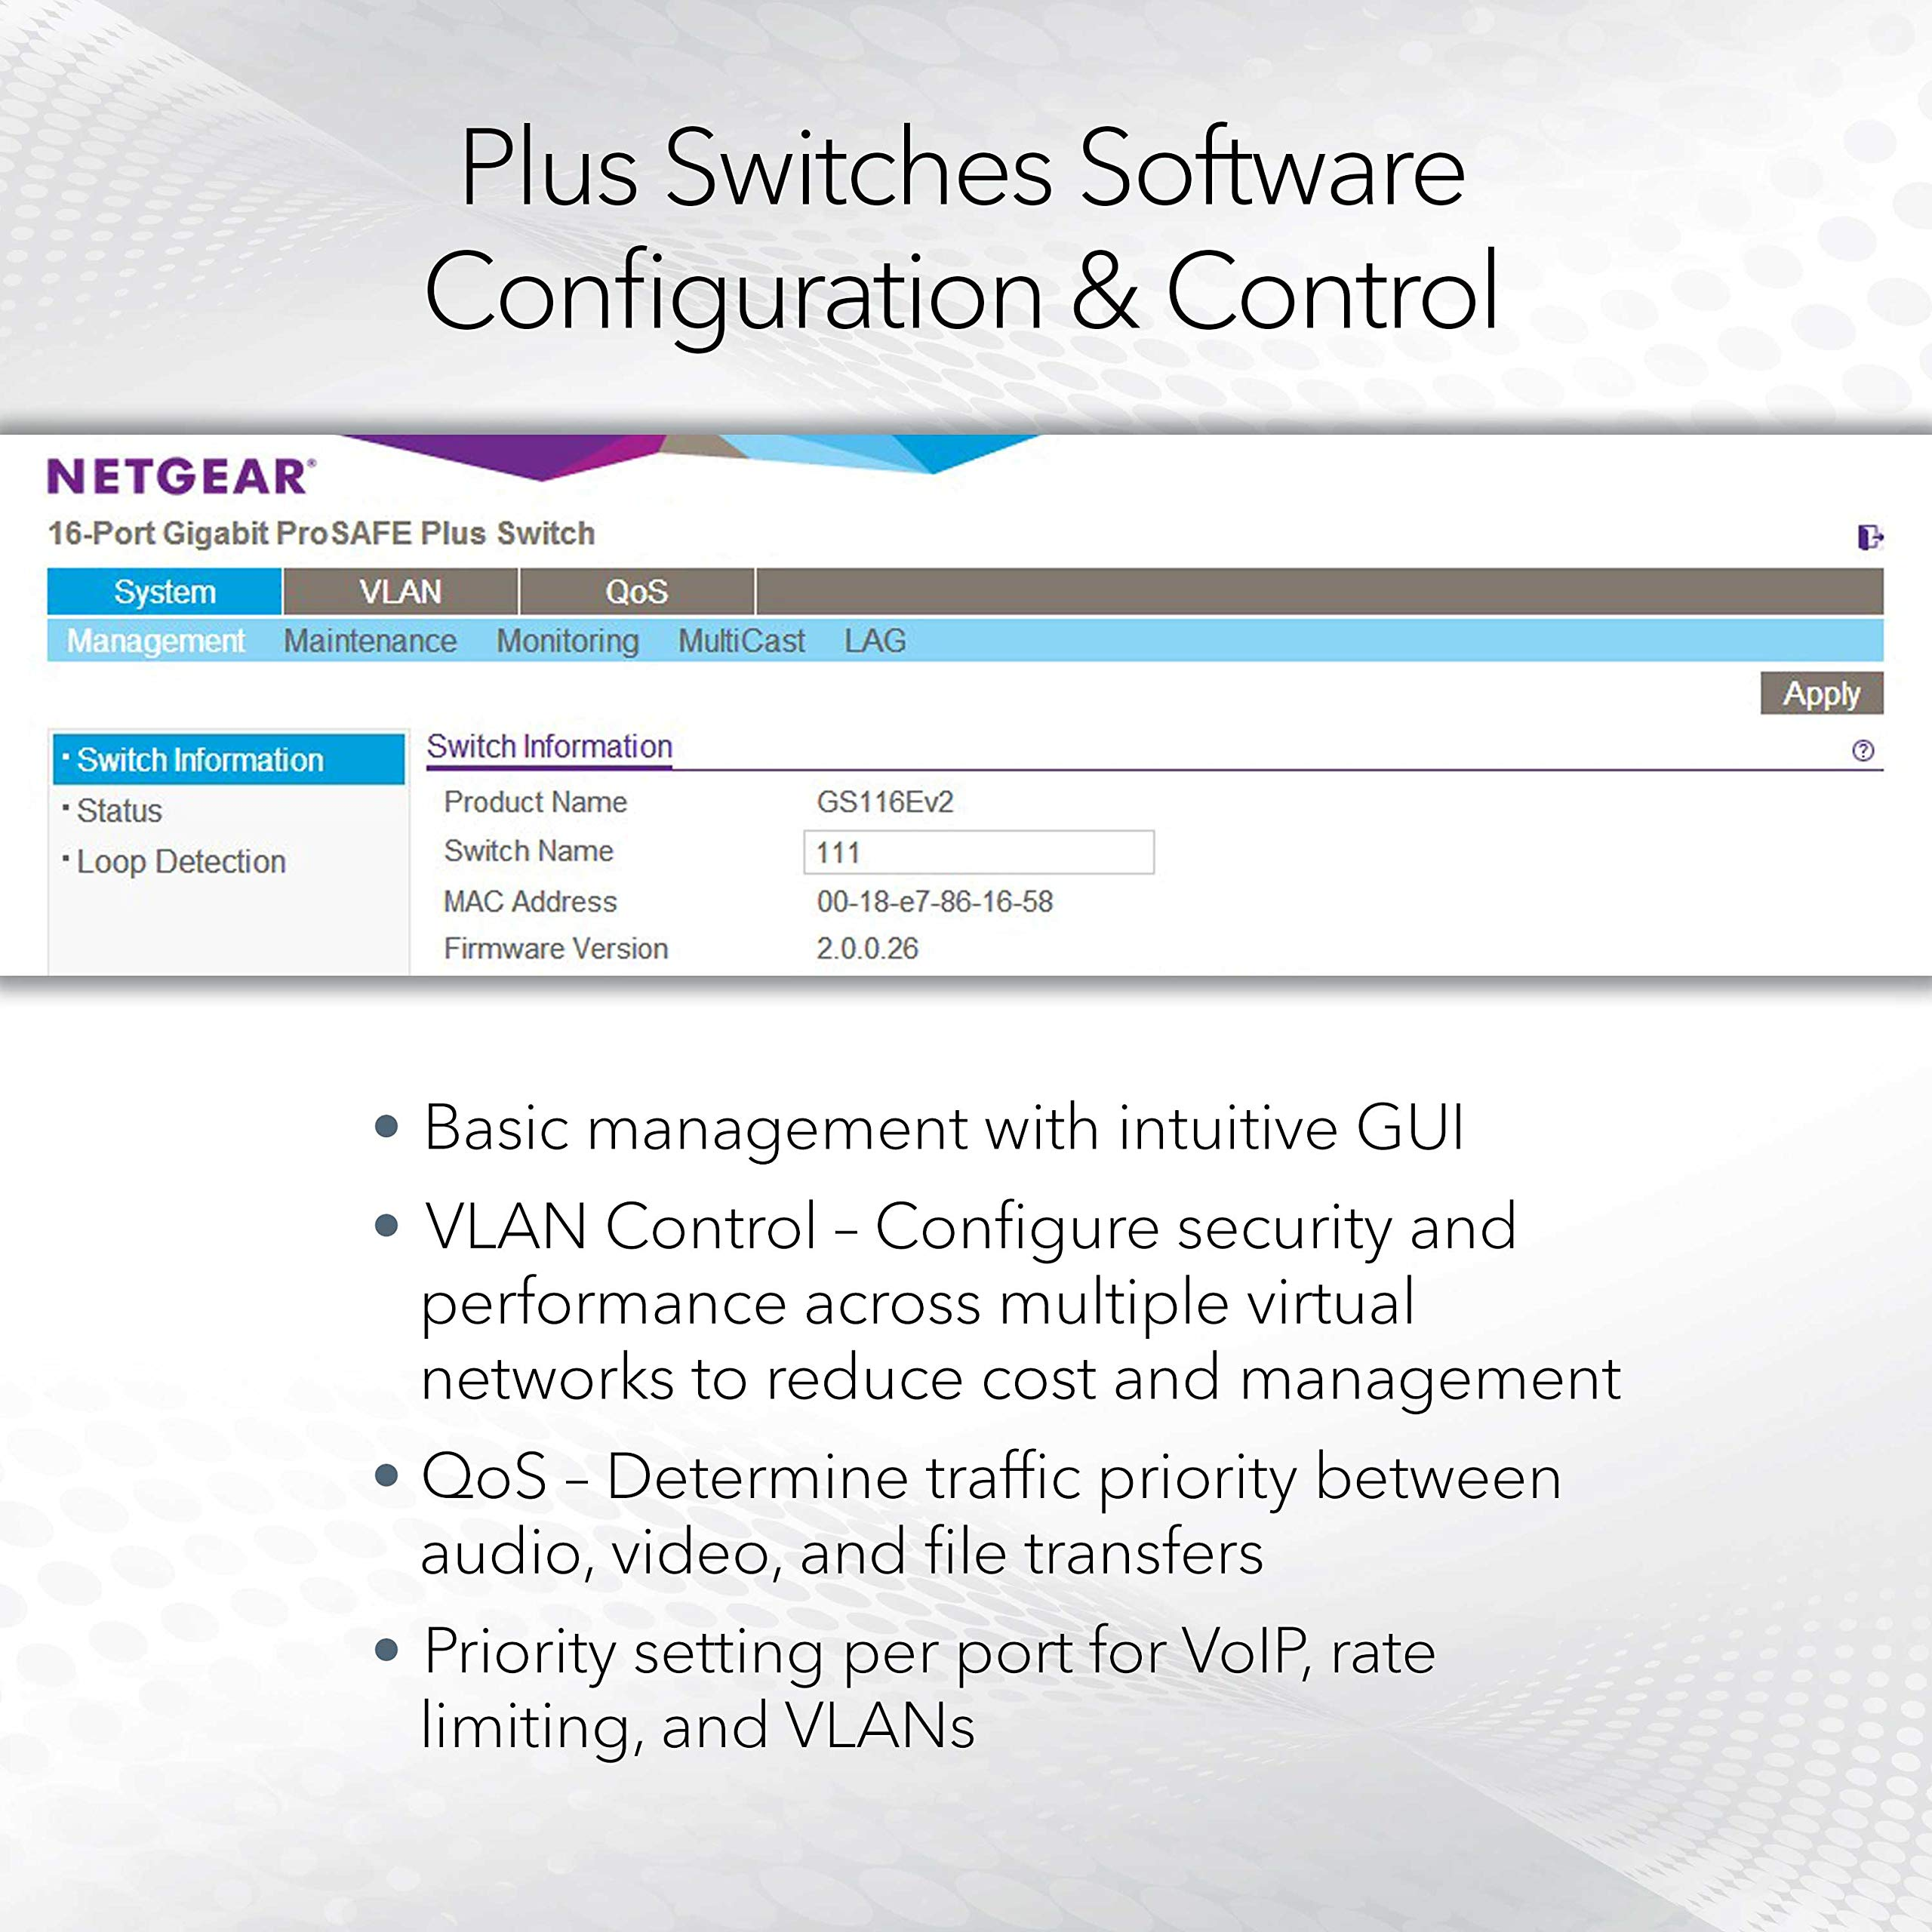 NETGEAR 8-Port PoE Gigabit Ethernet Plus Switch (GS108PEv3) - Managed, with 4 x PoE @ 53W, Desktop or Wall Mount, and Limited Lifetime Protection